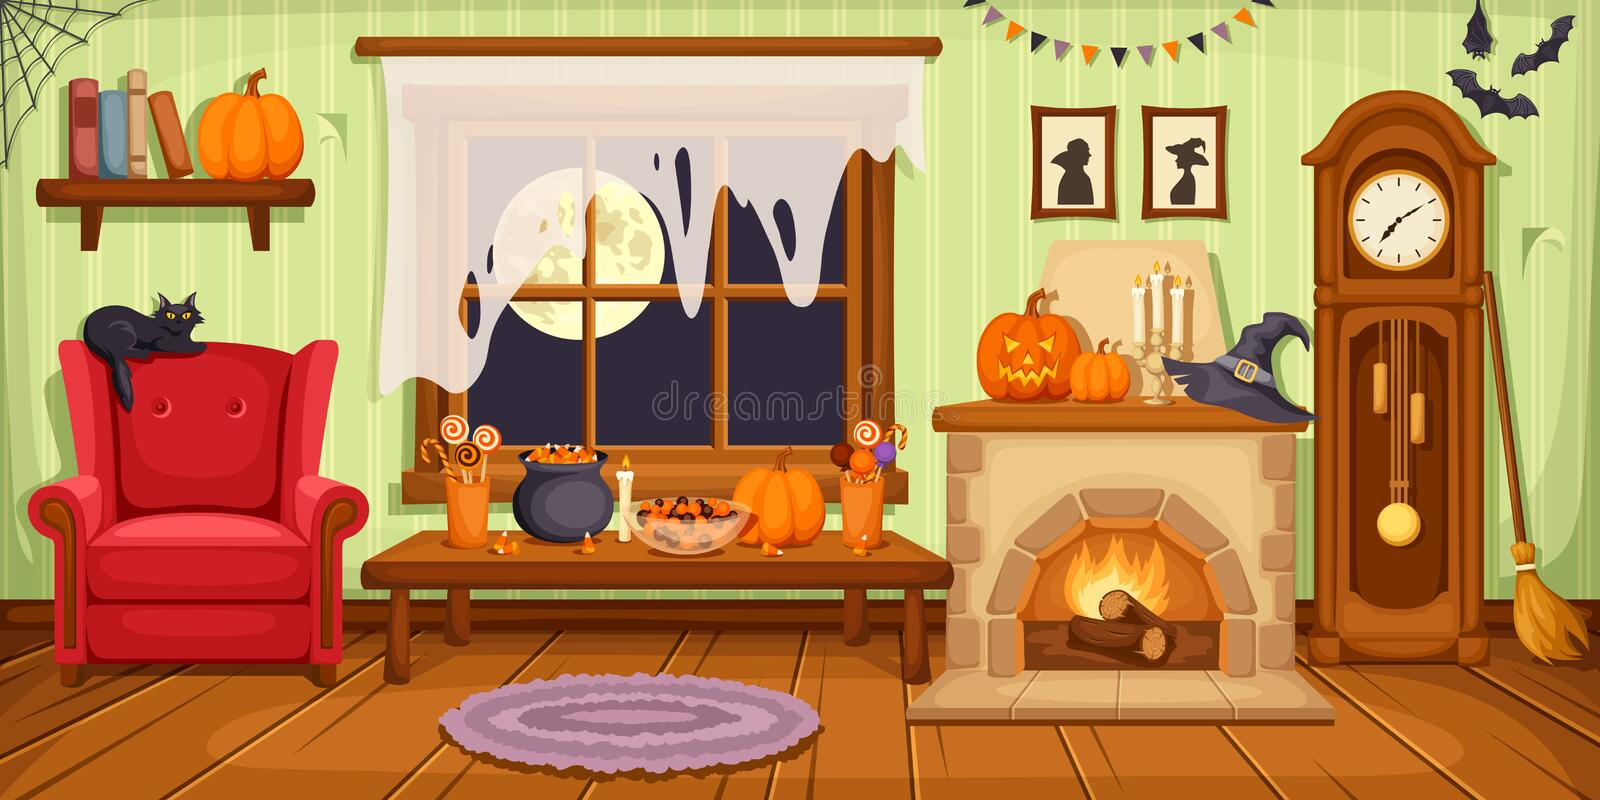 Interior del sitio de Halloween Ilustración del vector libre illustration